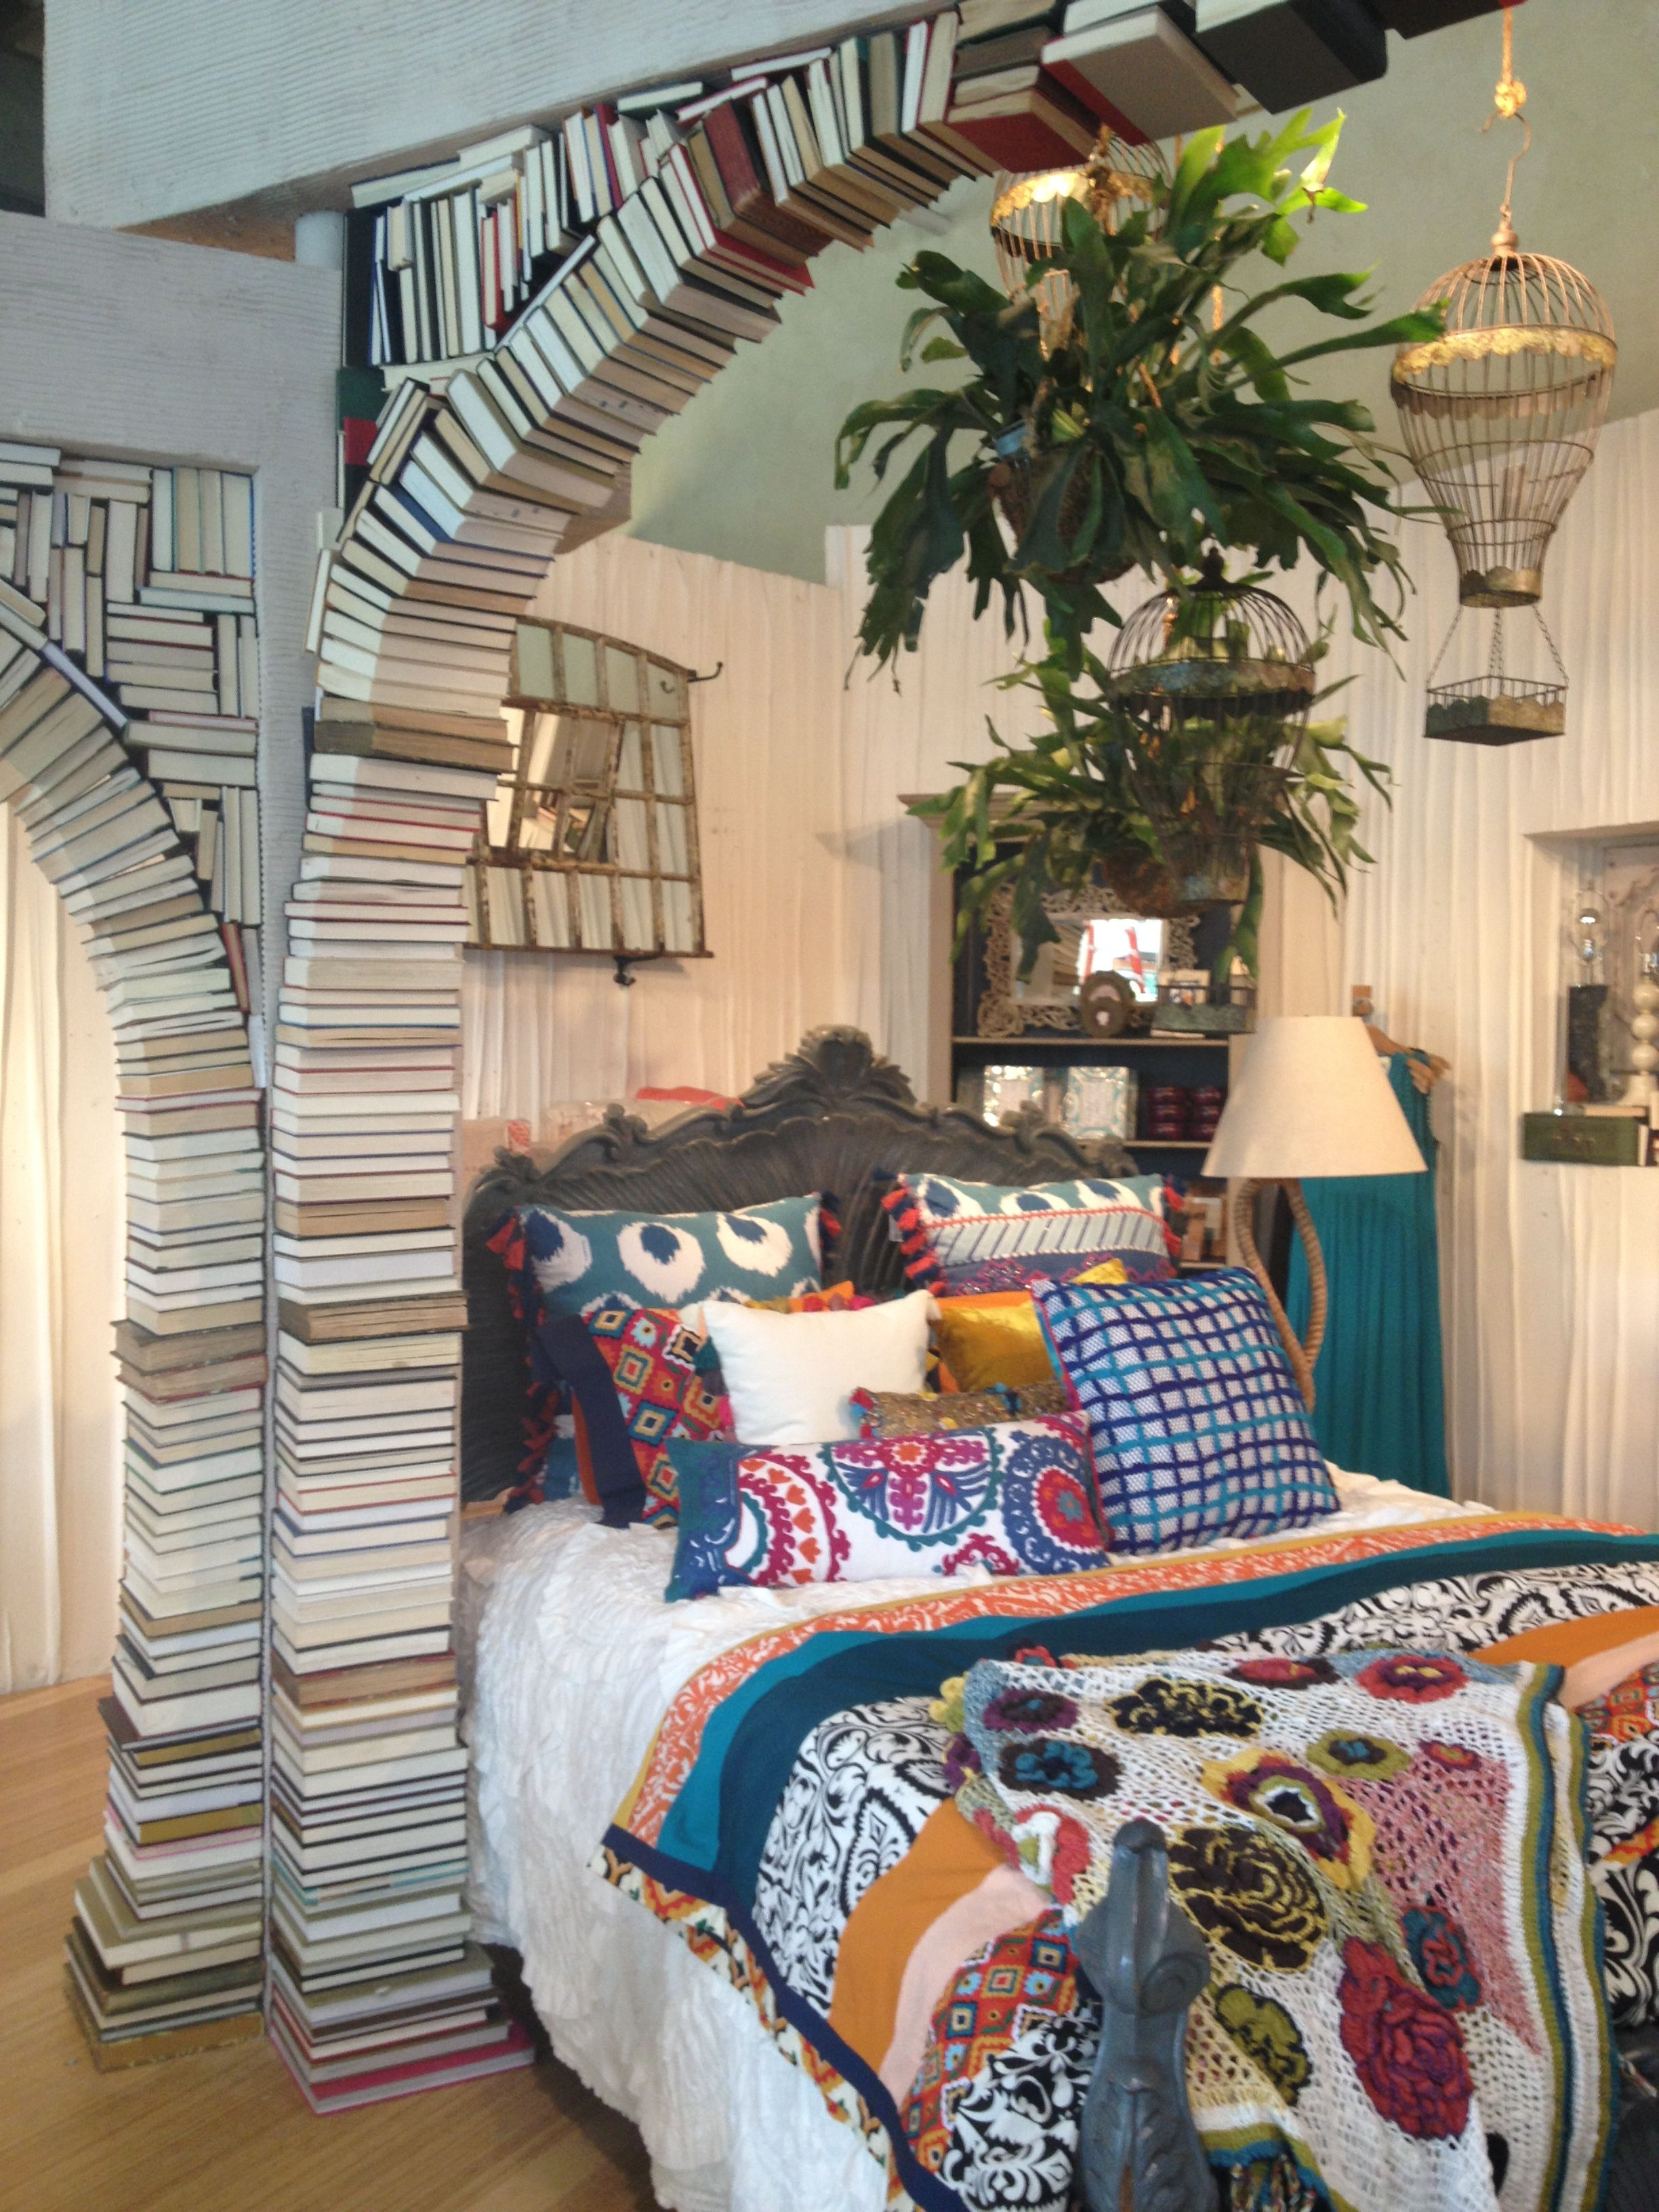 Books Decor Anthropologie Display Book Arch Anthropologie Displays